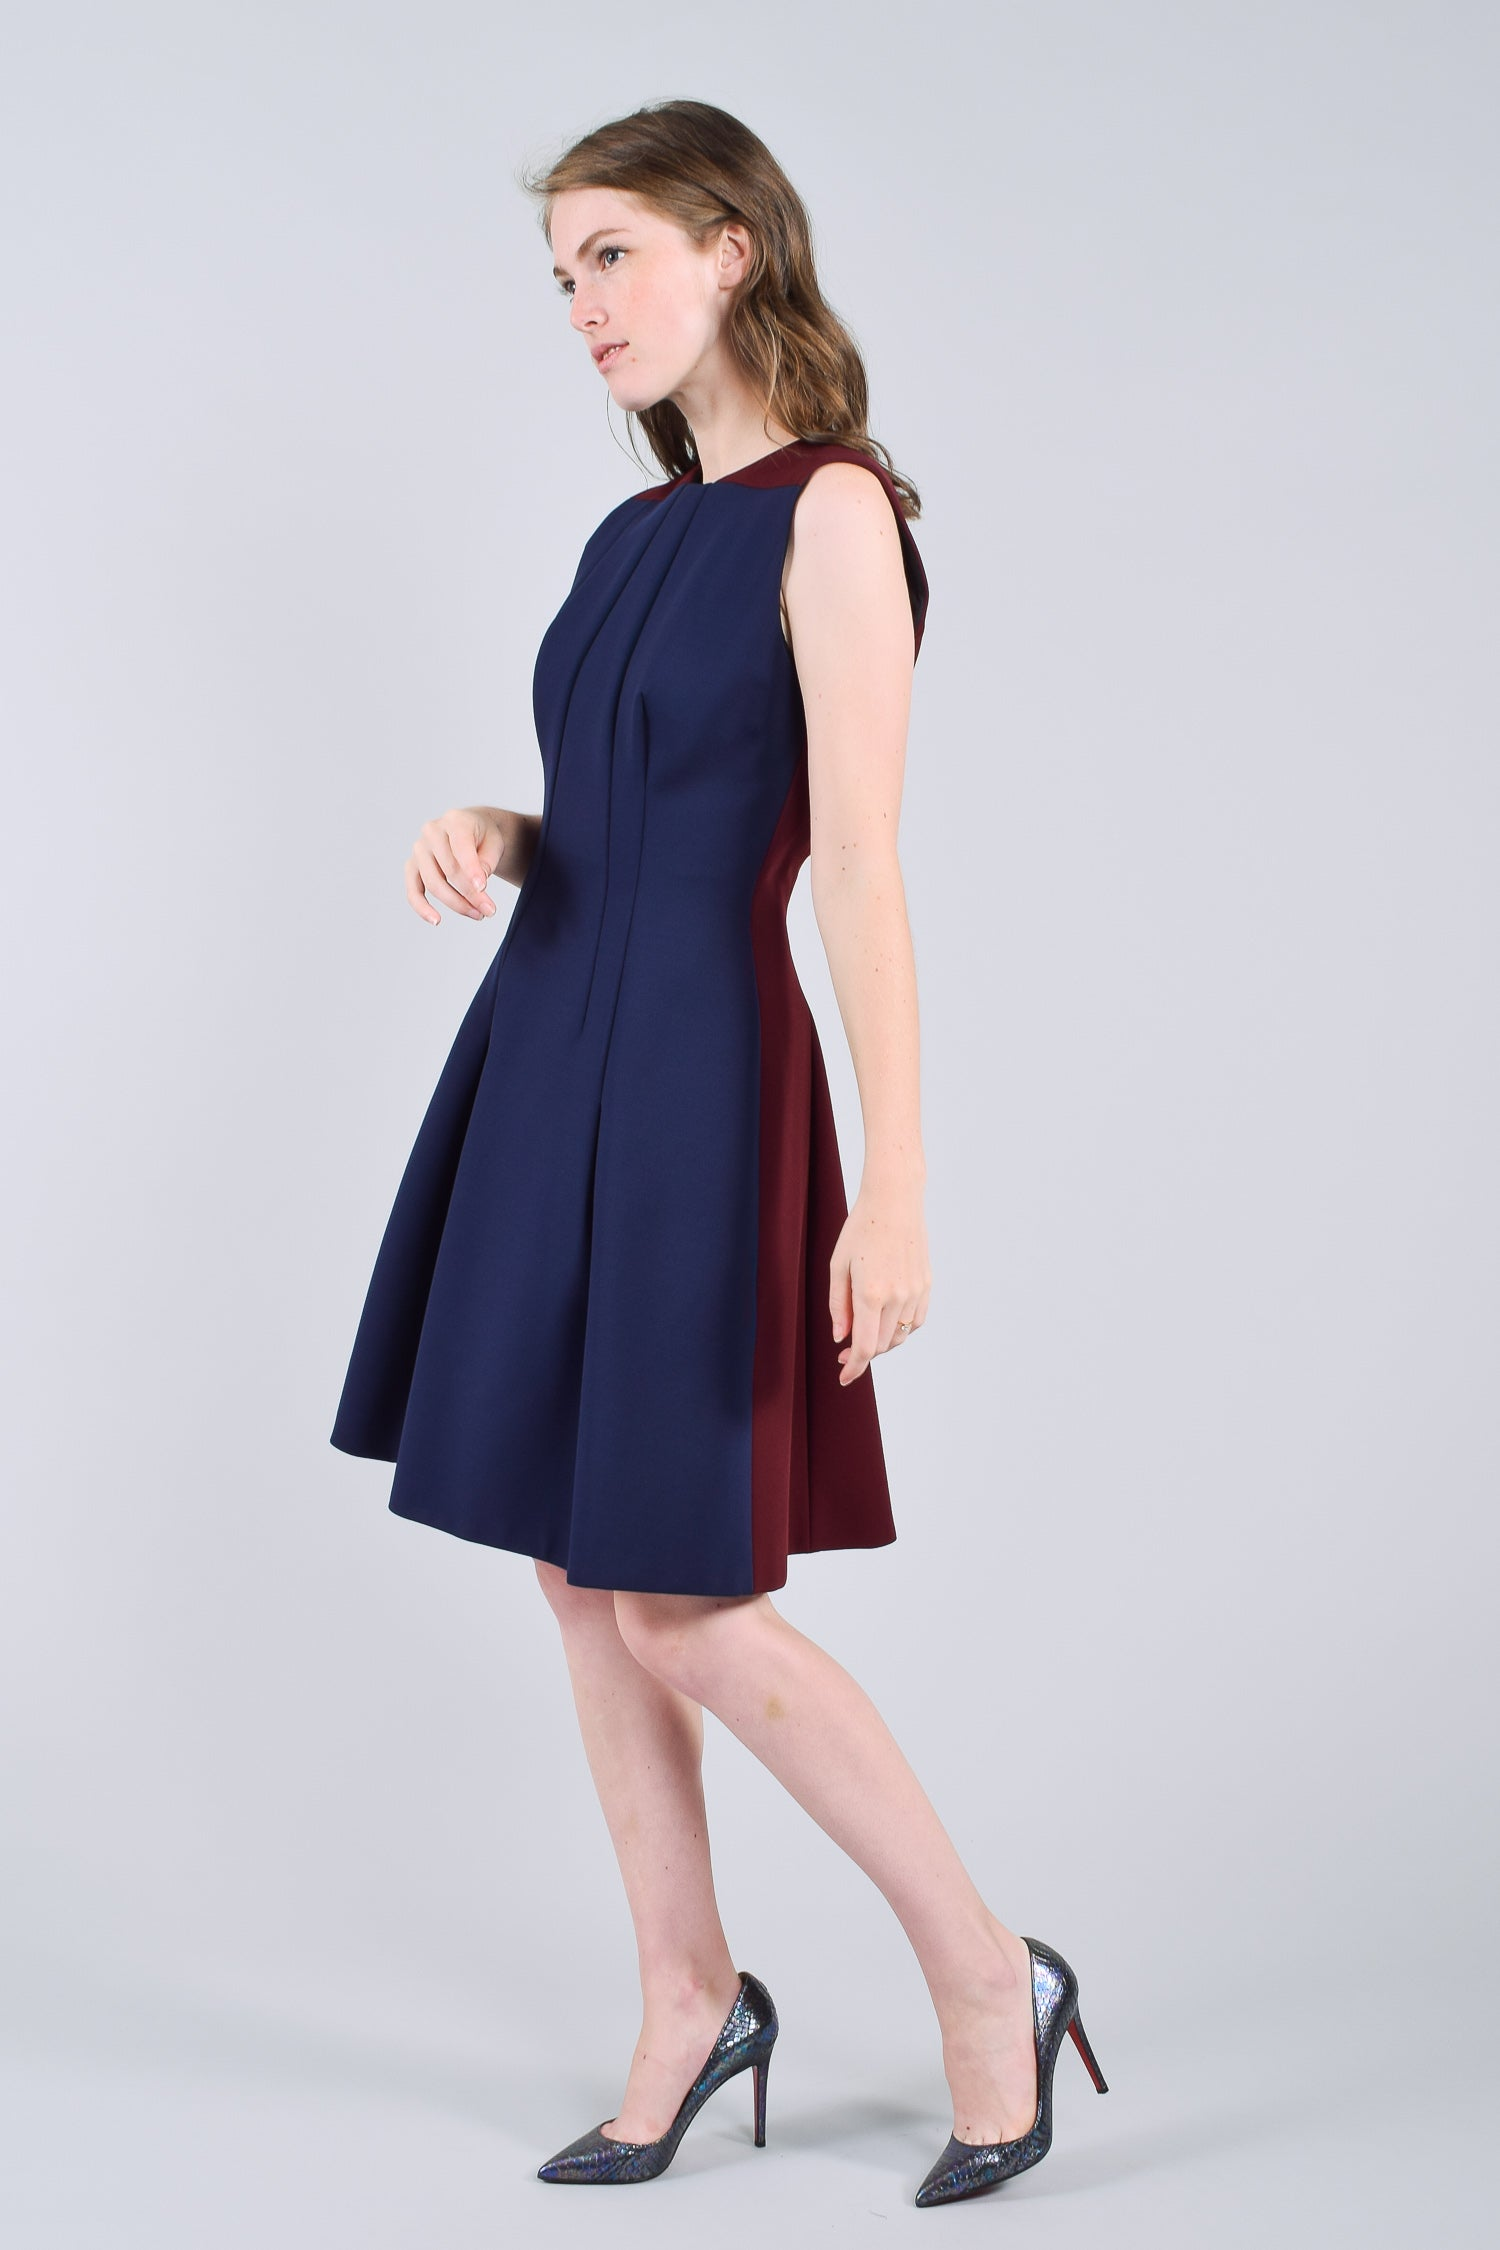 Victoria Beckham Navy and Burgundy A Line Dress Size 10